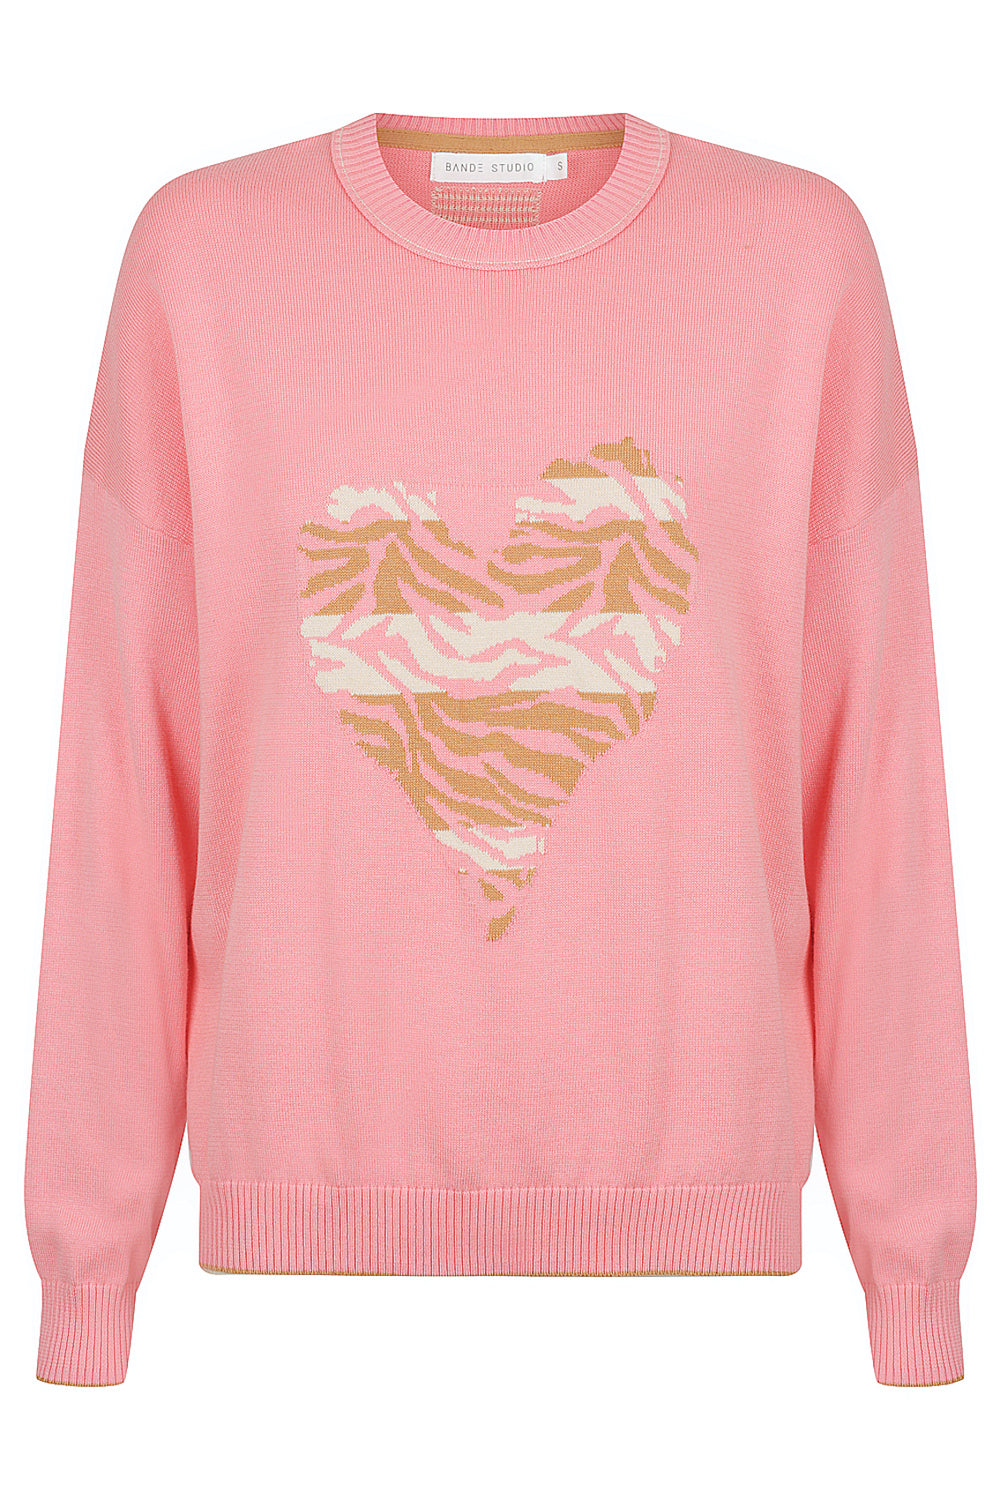 Miah Animal Heart Knit - rose pink